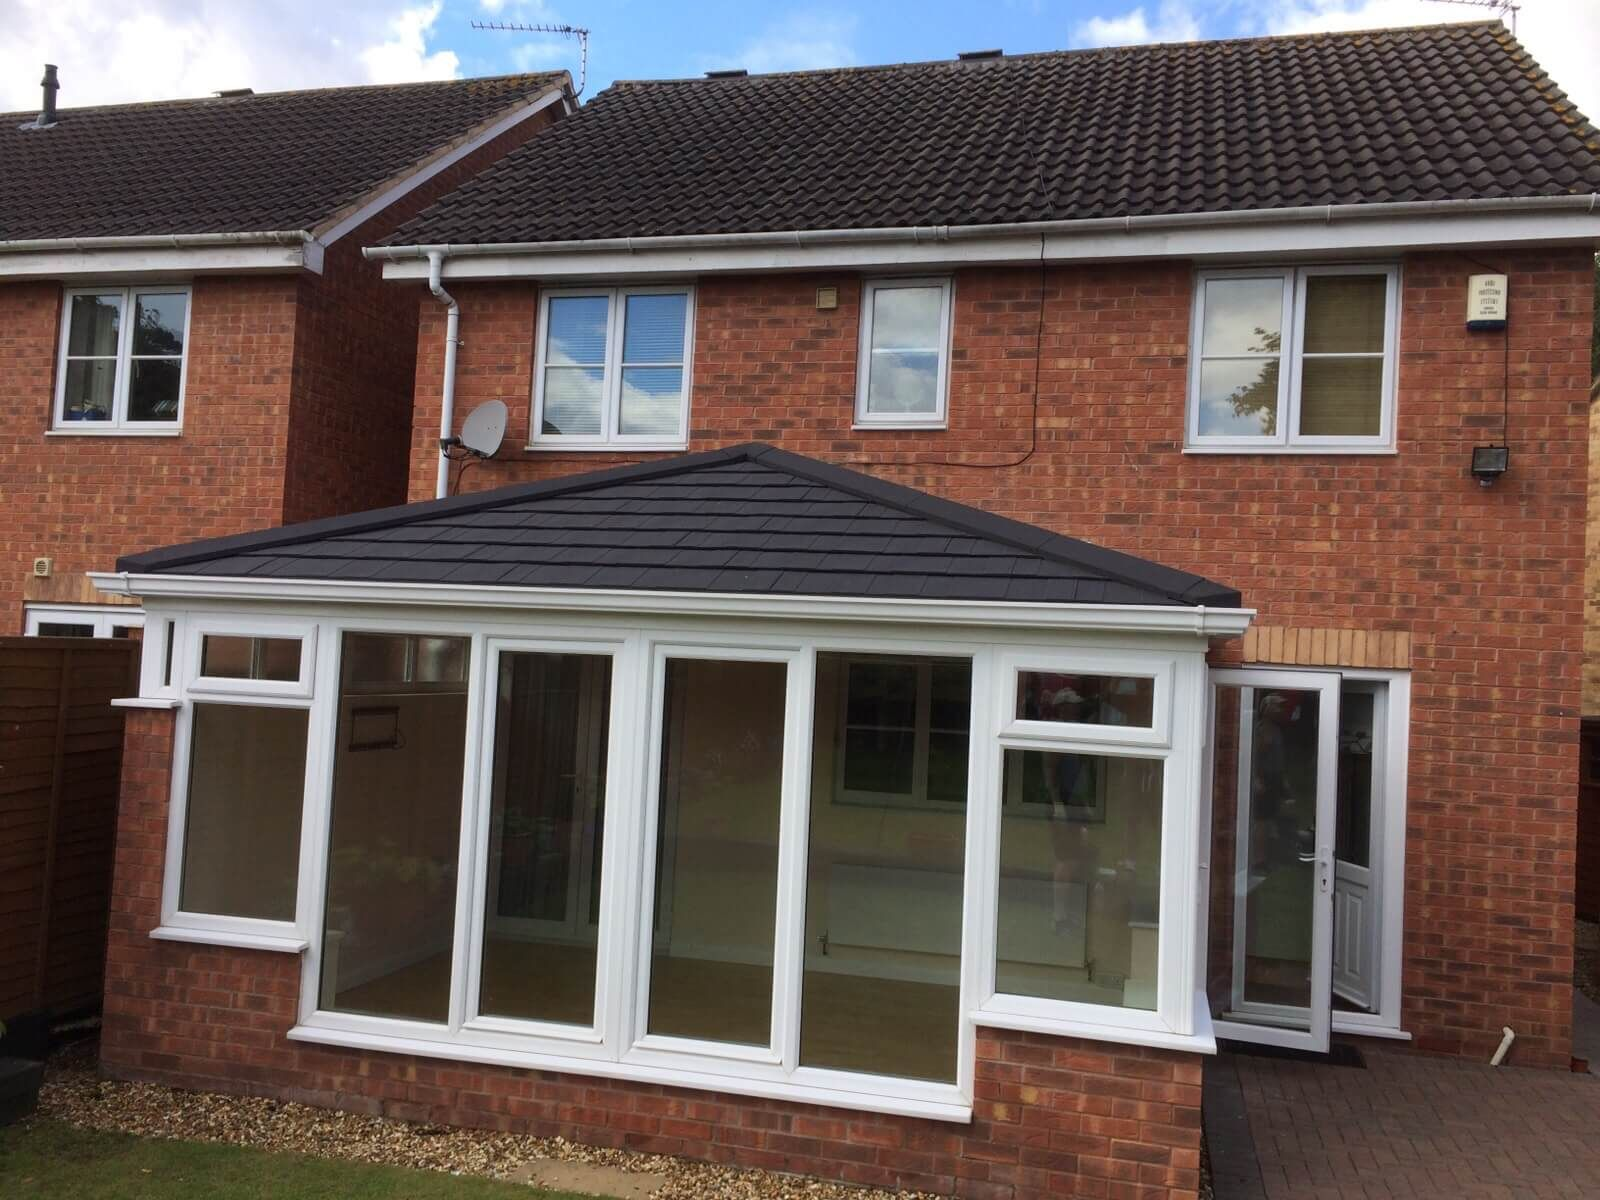 Guardian Conservatory Roof Styles Labc Approved Enquire Today Roof Styles Conservatory Roof Tiled Conservatory Roof